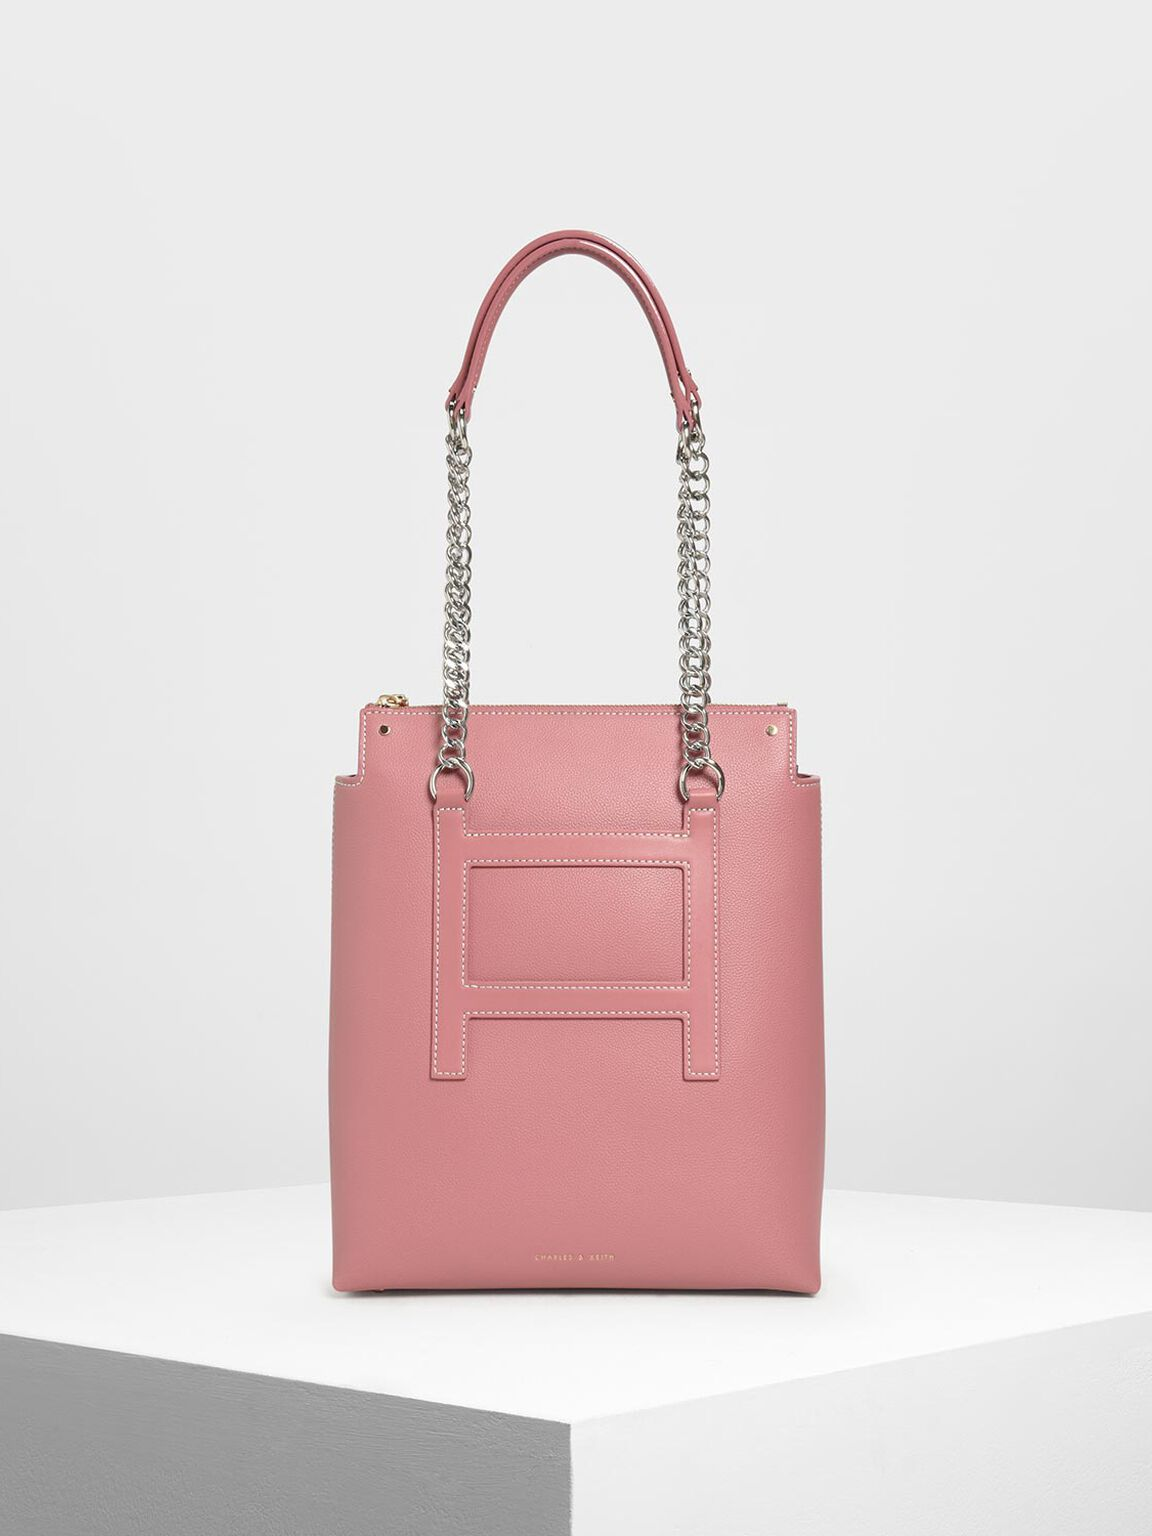 Long Chain Tote Bag, Pink, hi-res